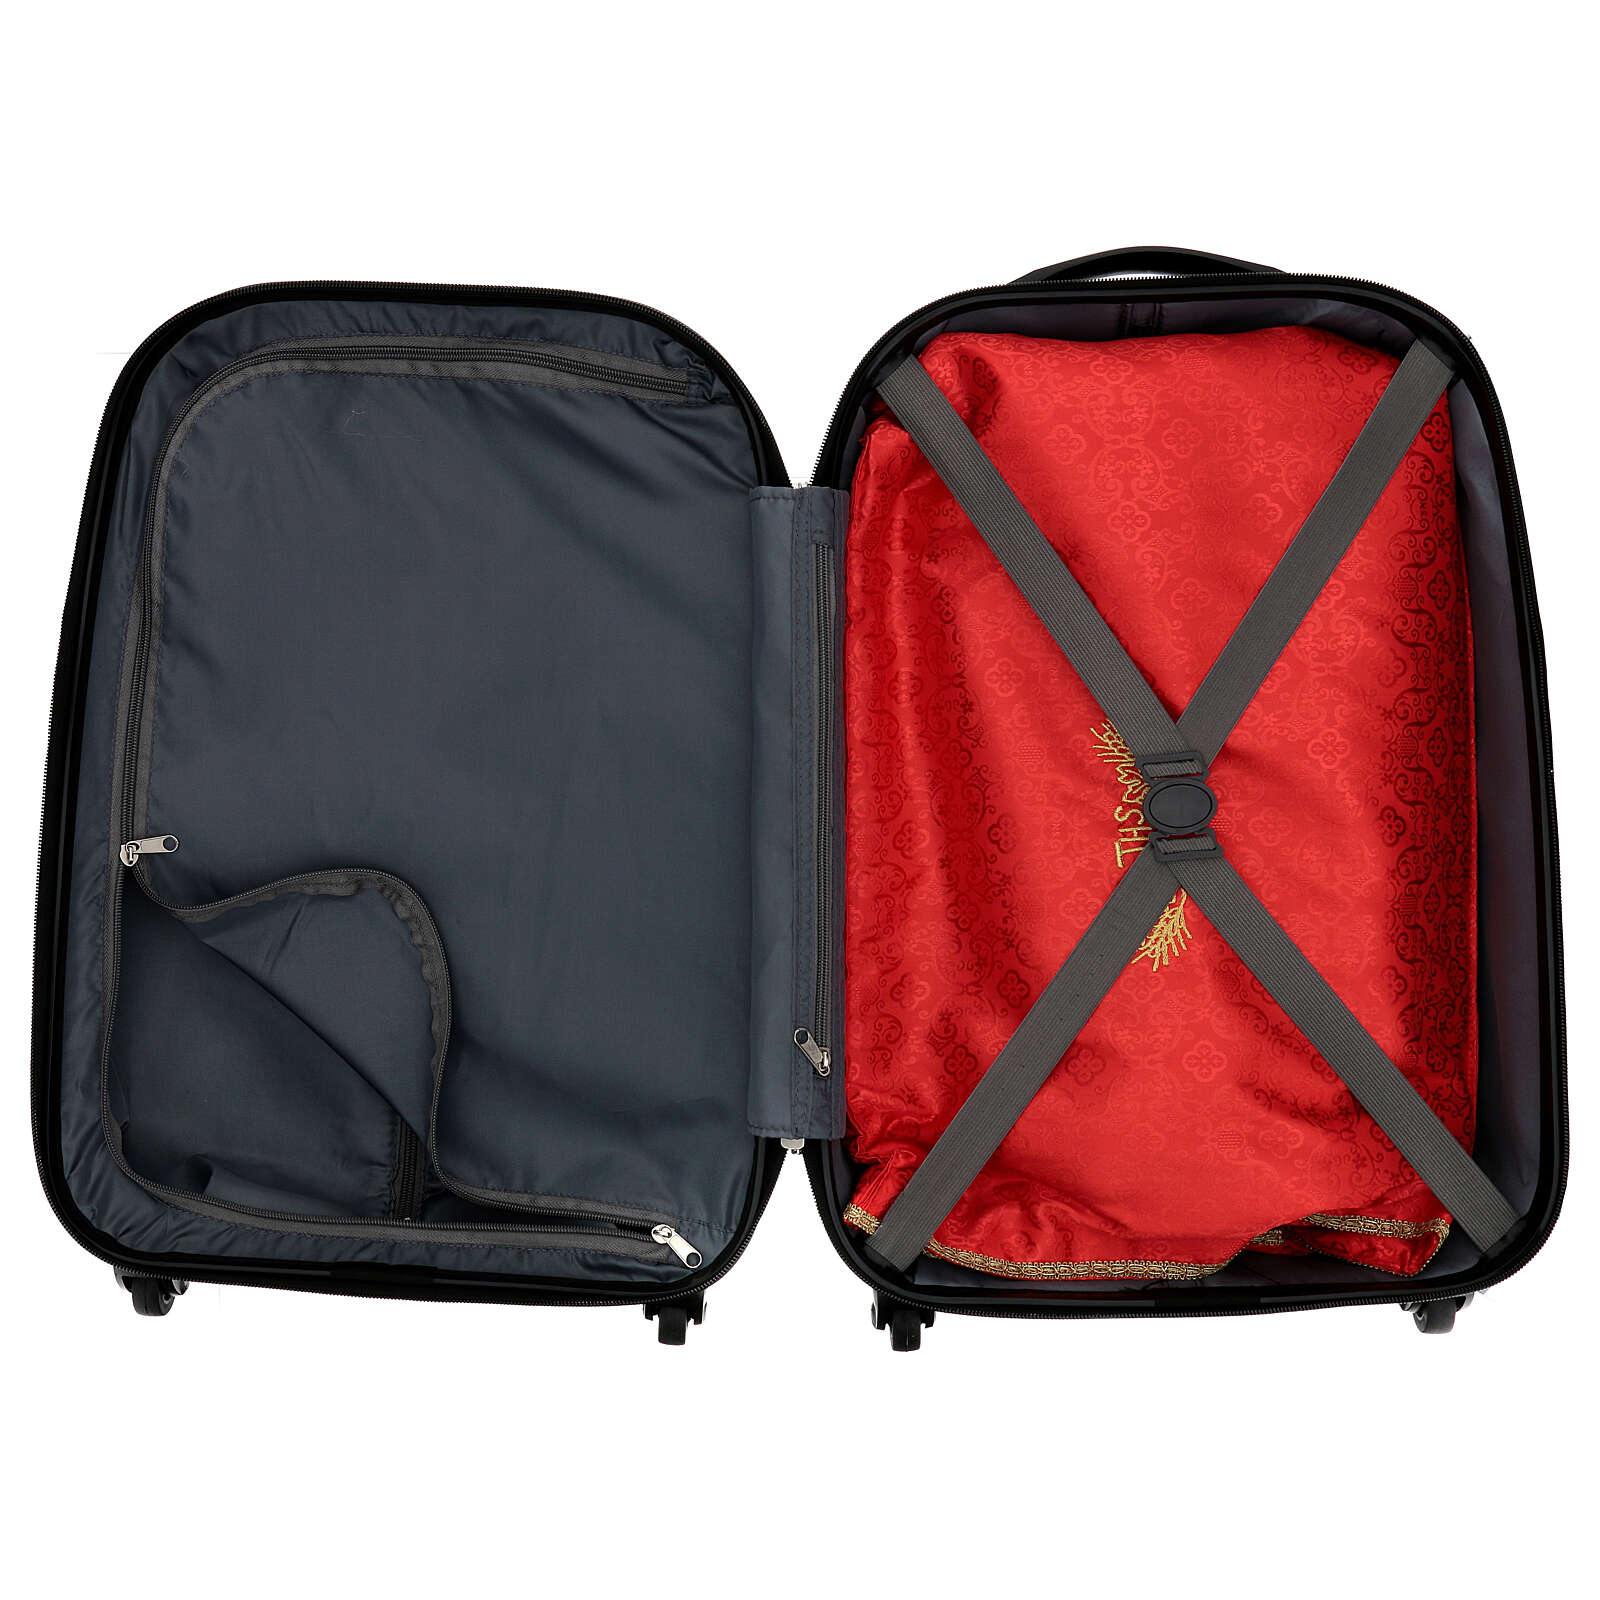 Trolley case for mass celebration with red Jacquard lining 3